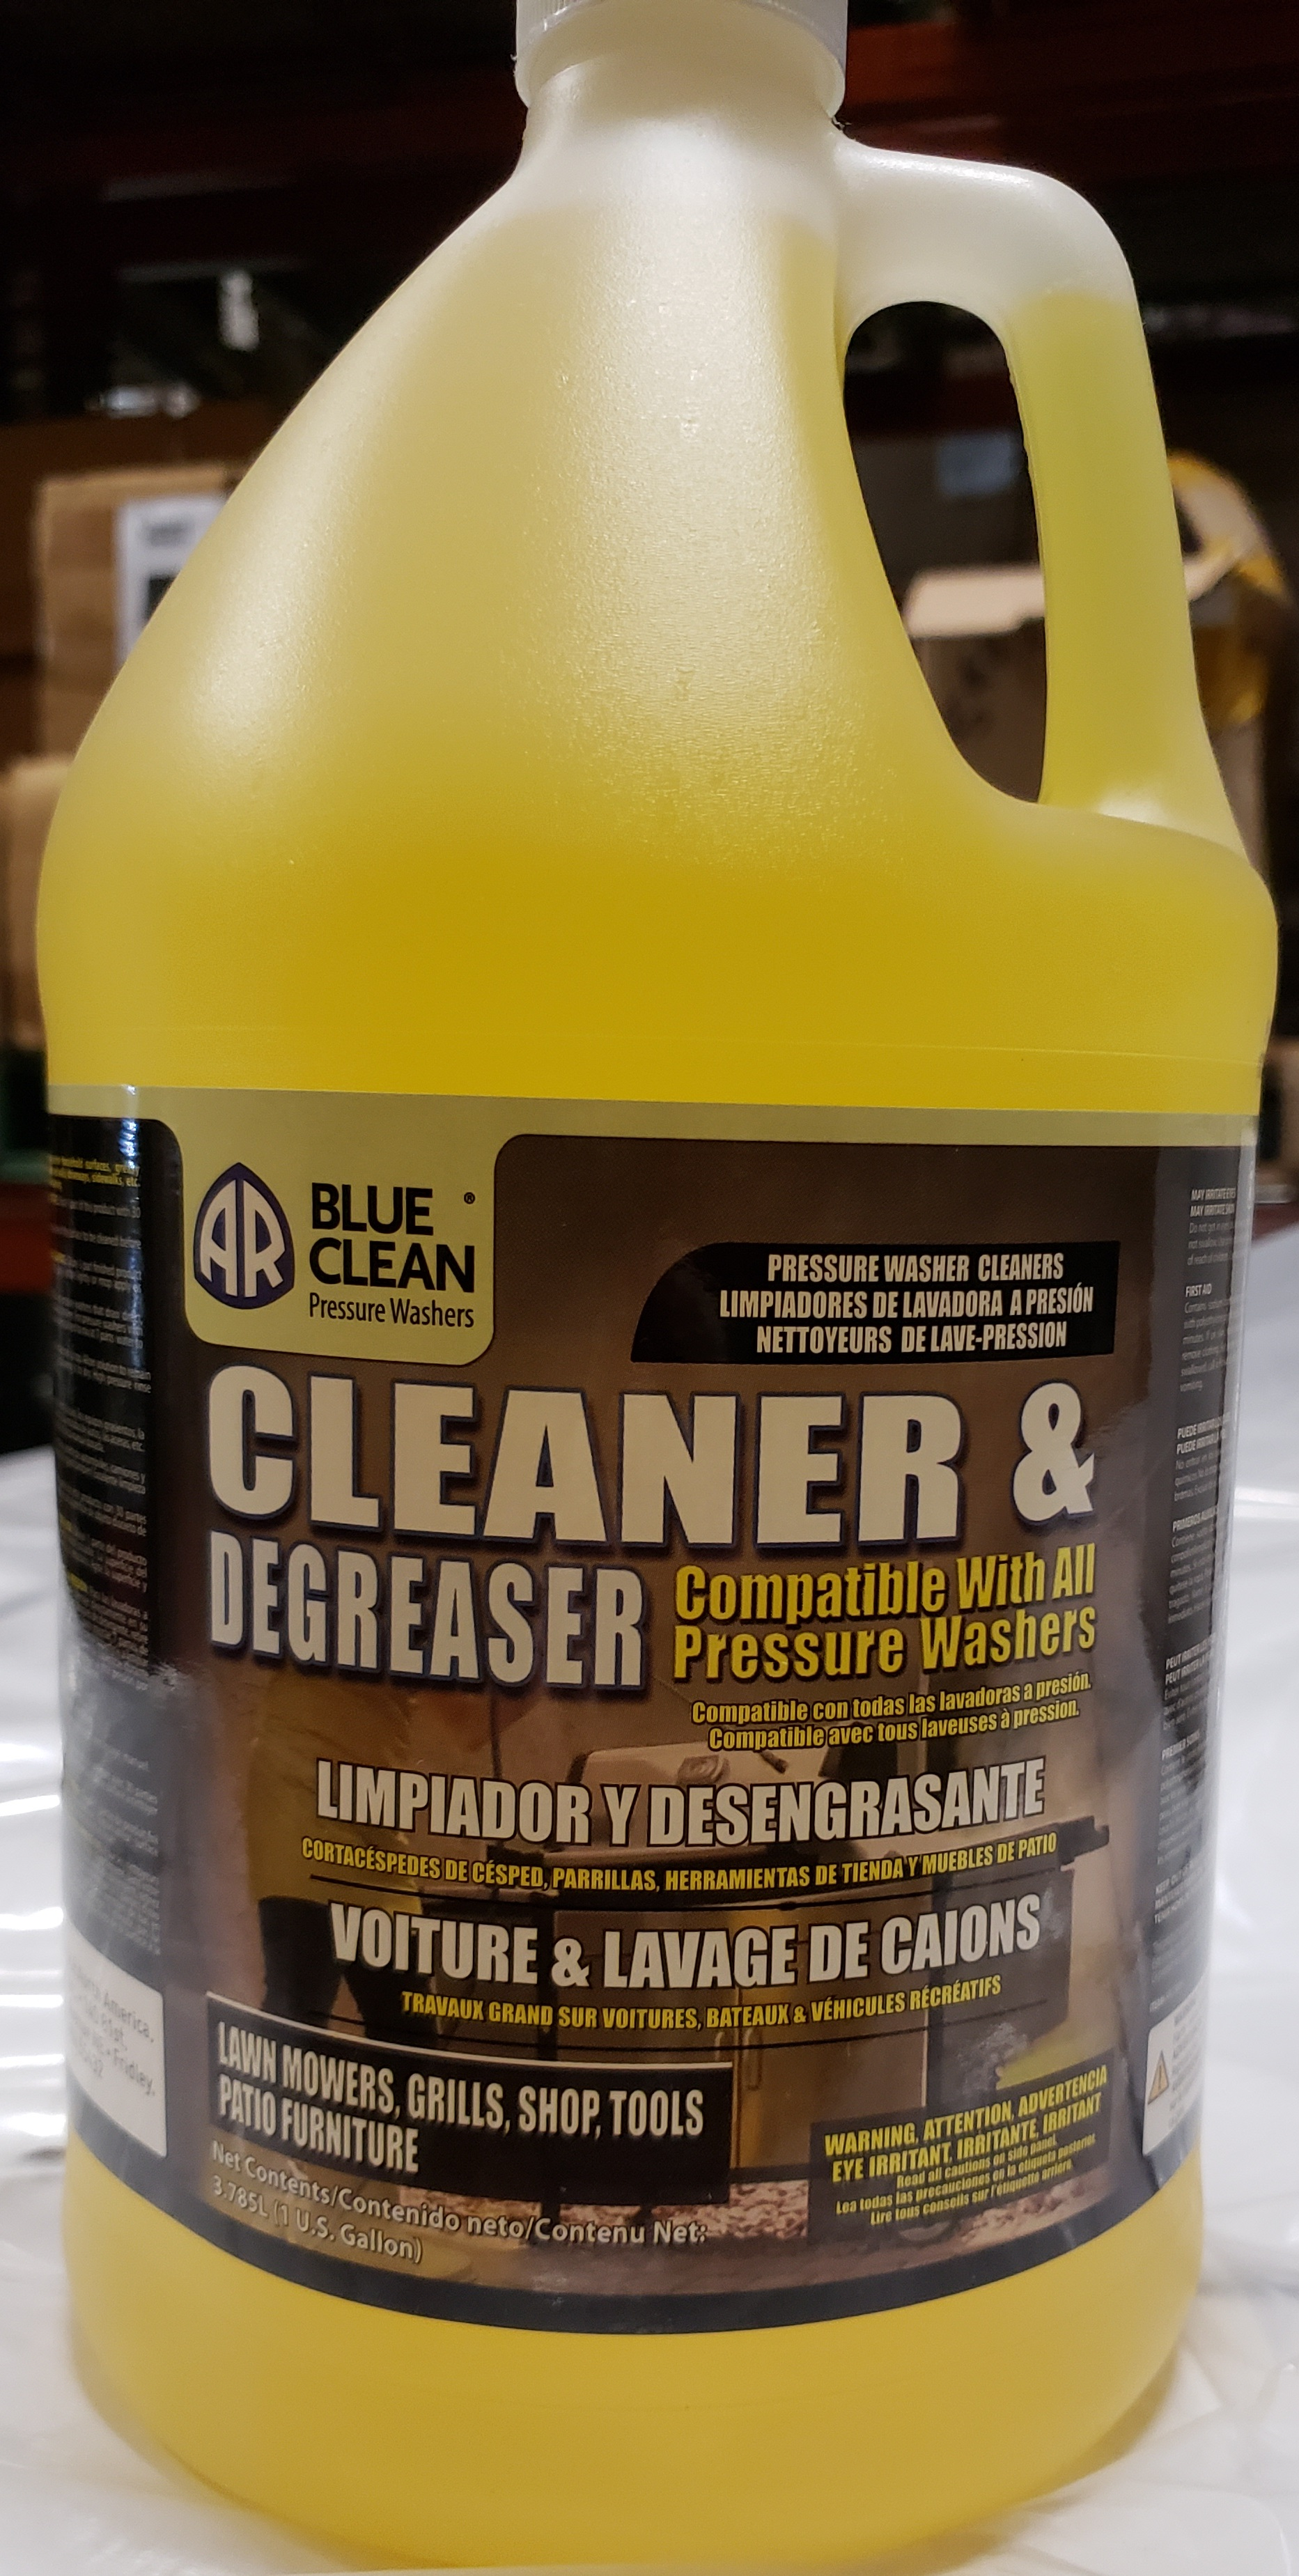 AR Blue Clean Degreaser Concentrated Detergent 1:30, ARDC004